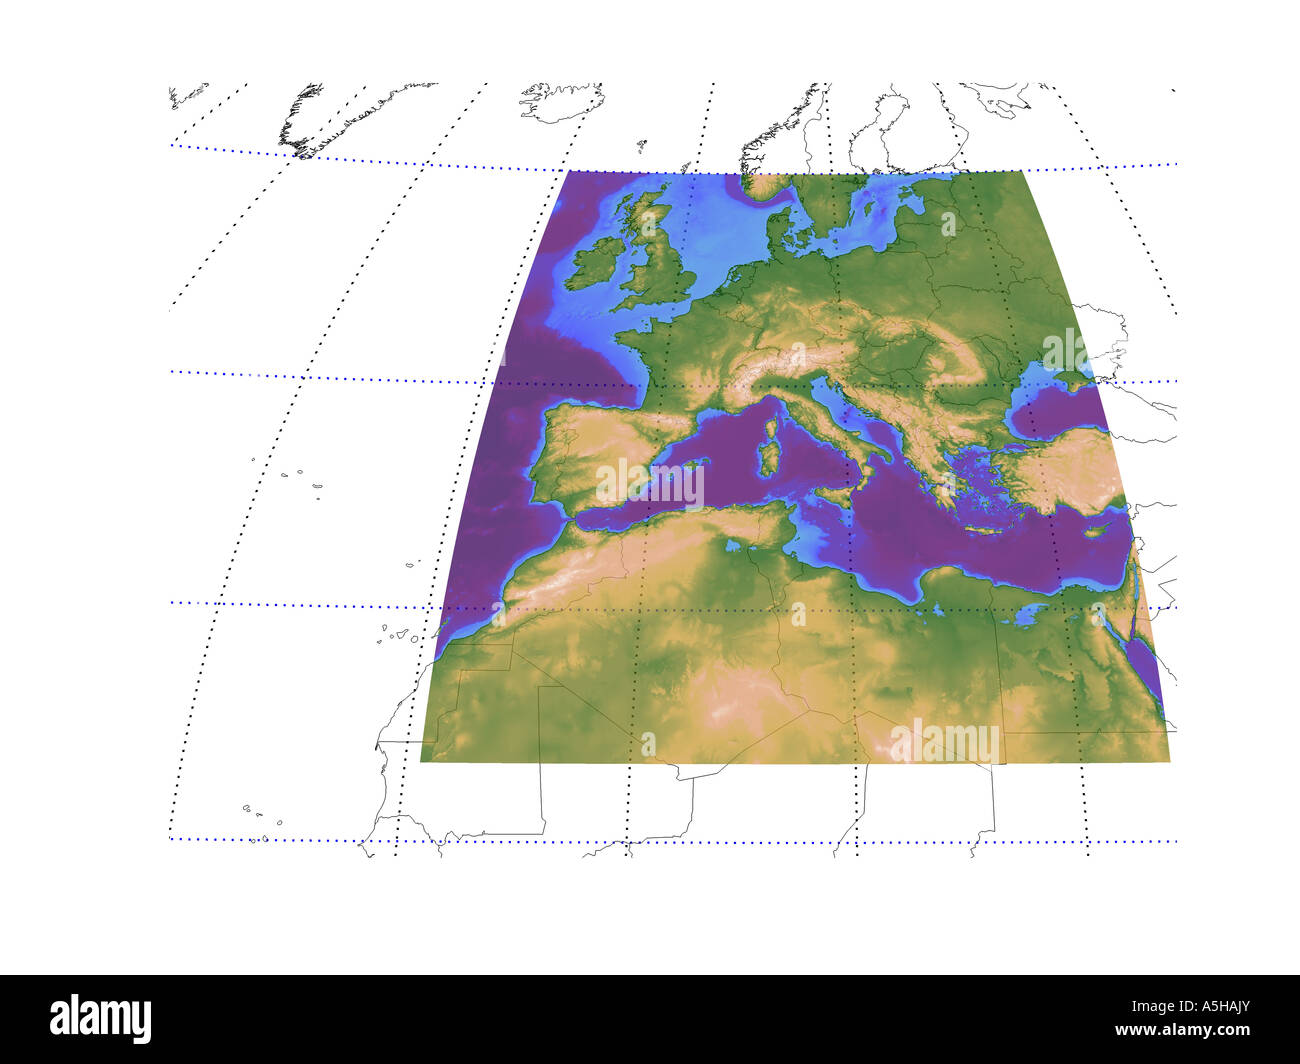 Topographic Map And Europe Stock Photos Topographic Map And Europe